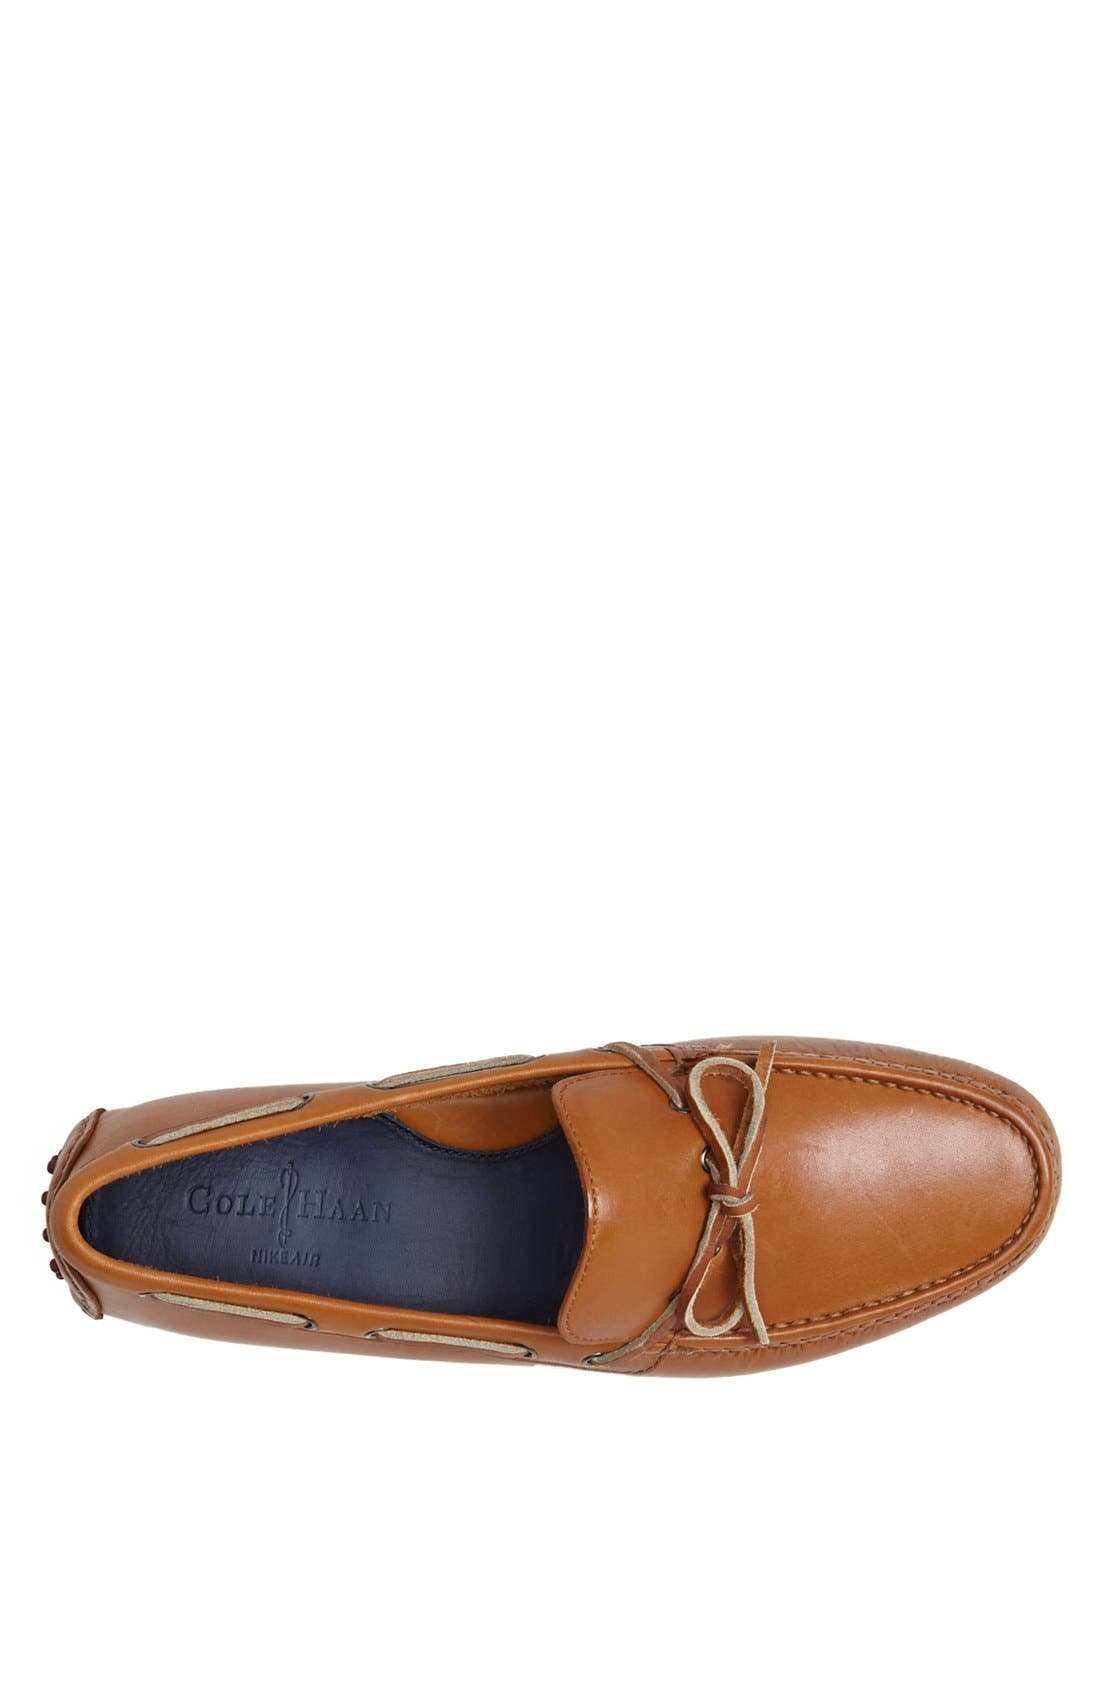 Alternate Image 3  - Cole Haan 'Air Grant' Driving Loafer (Men)